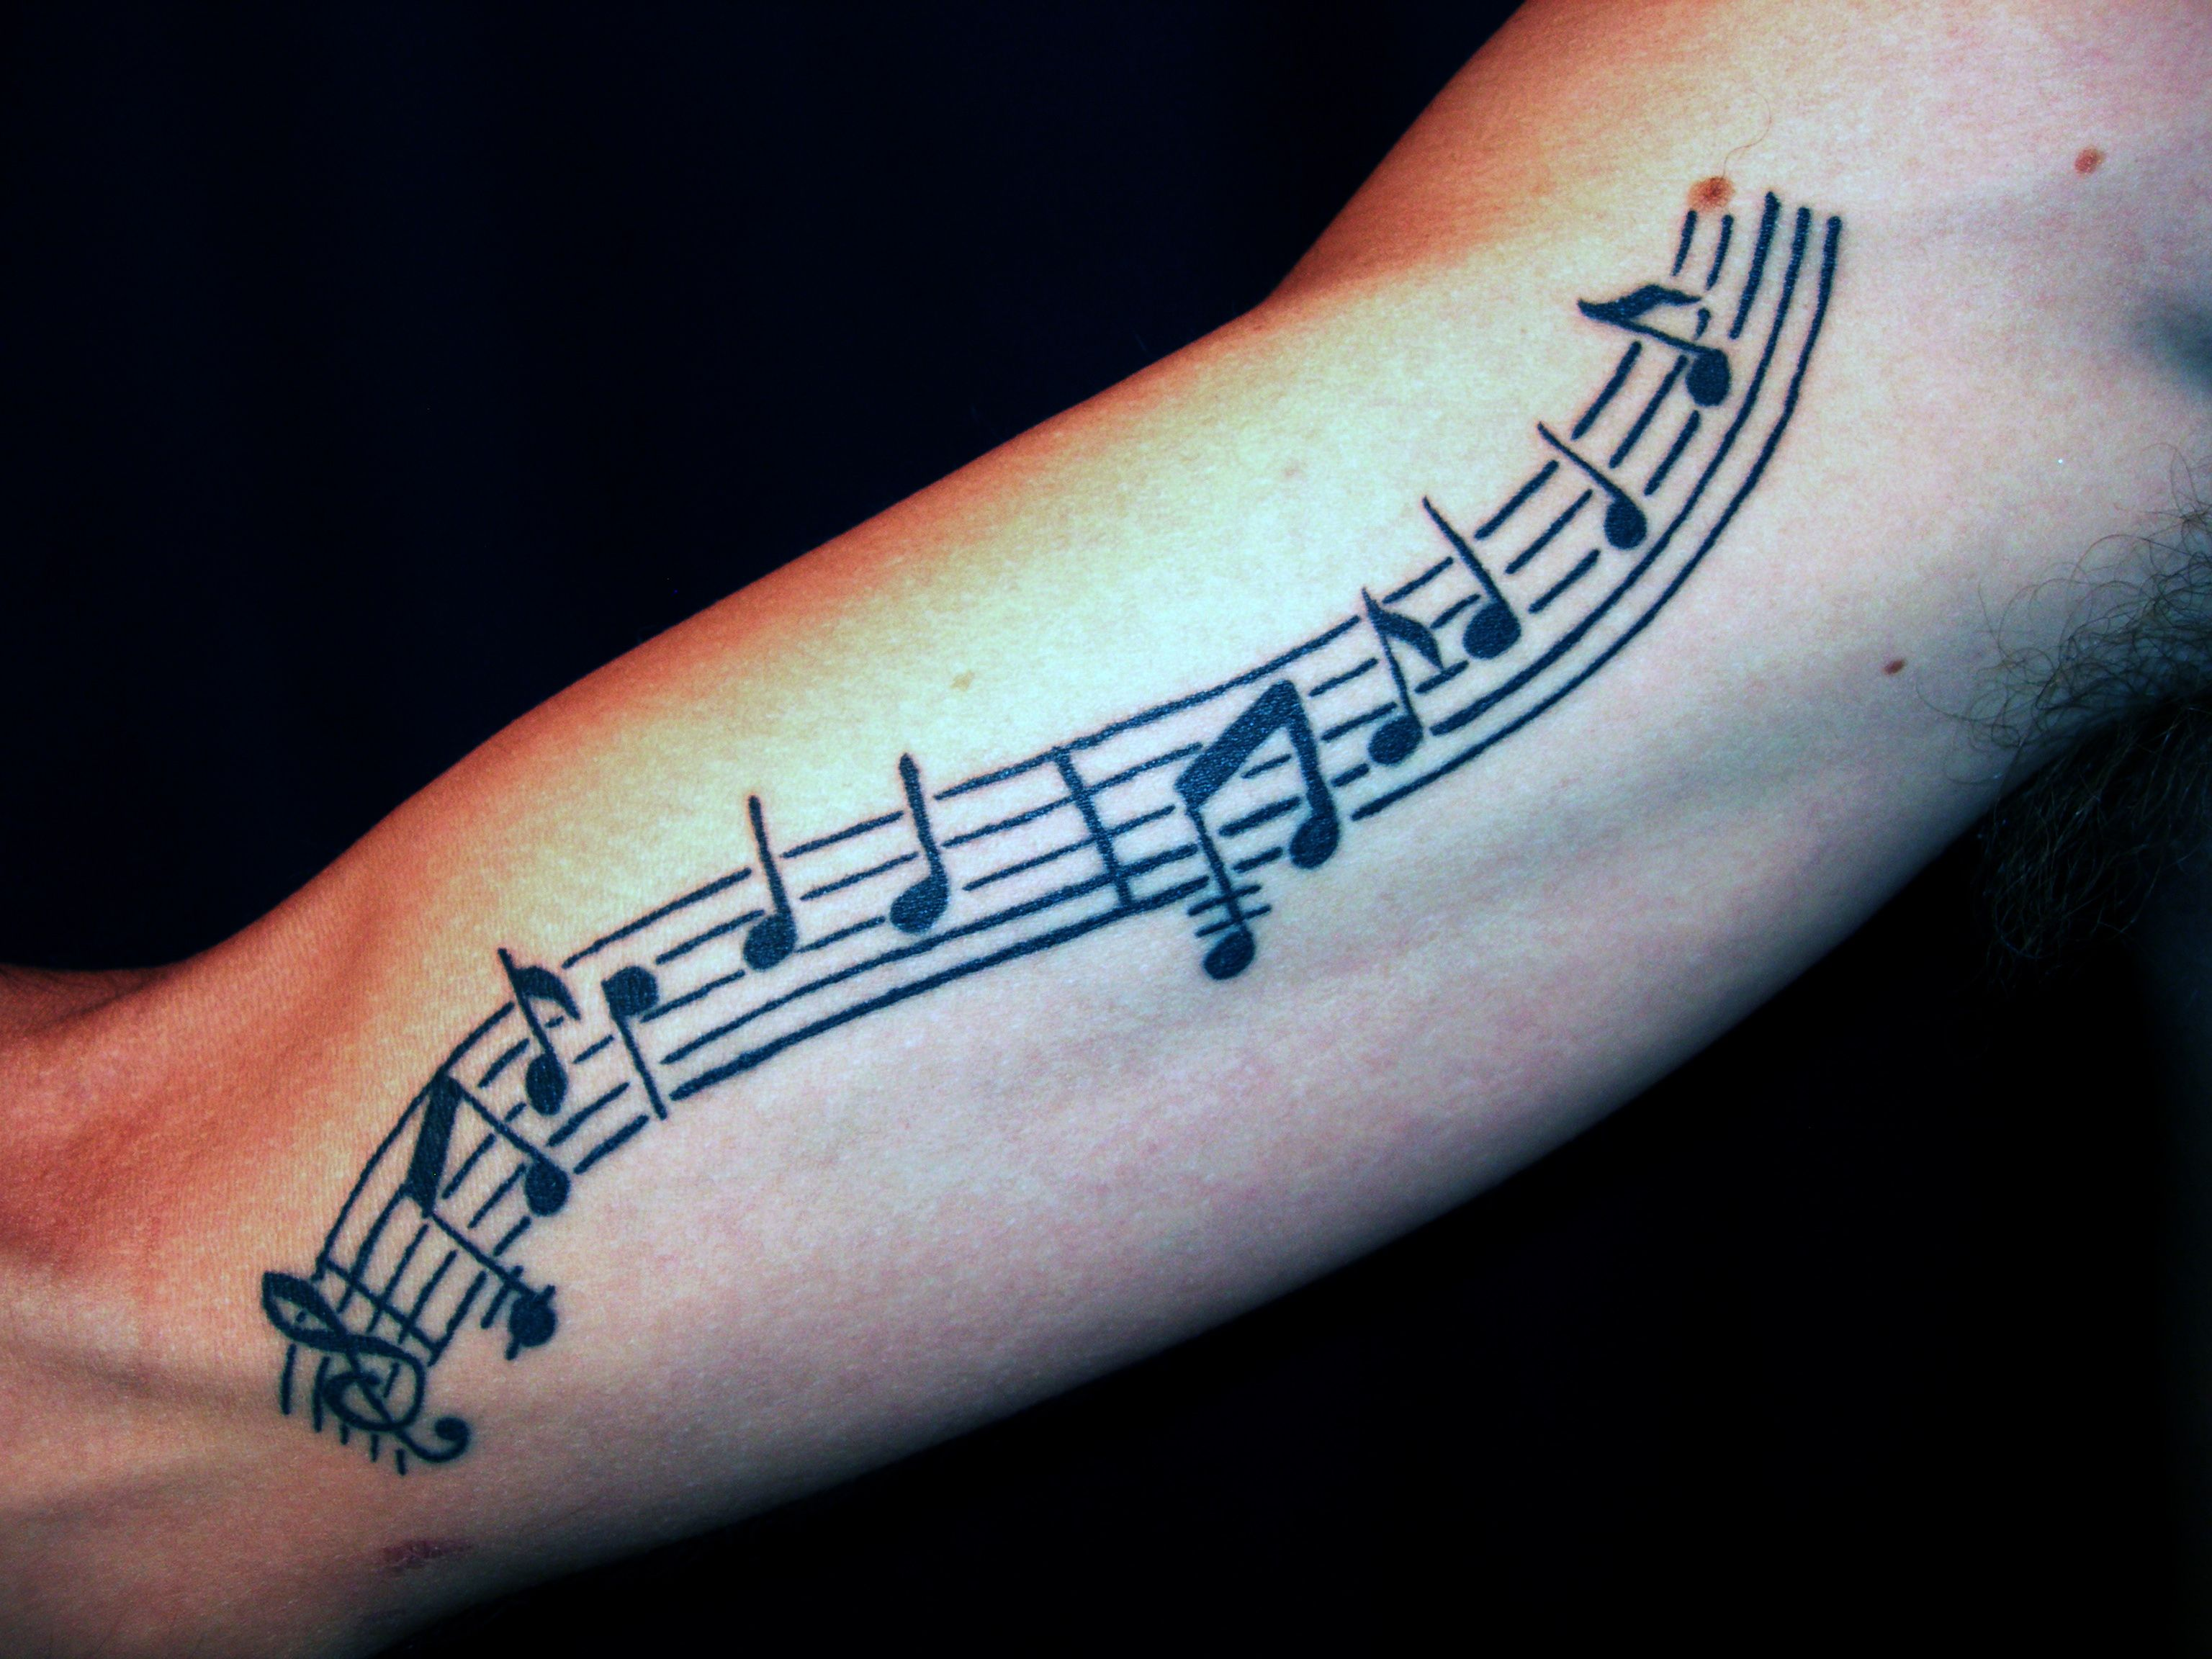 sheet music tattoo arm images galleries with a bite. Black Bedroom Furniture Sets. Home Design Ideas